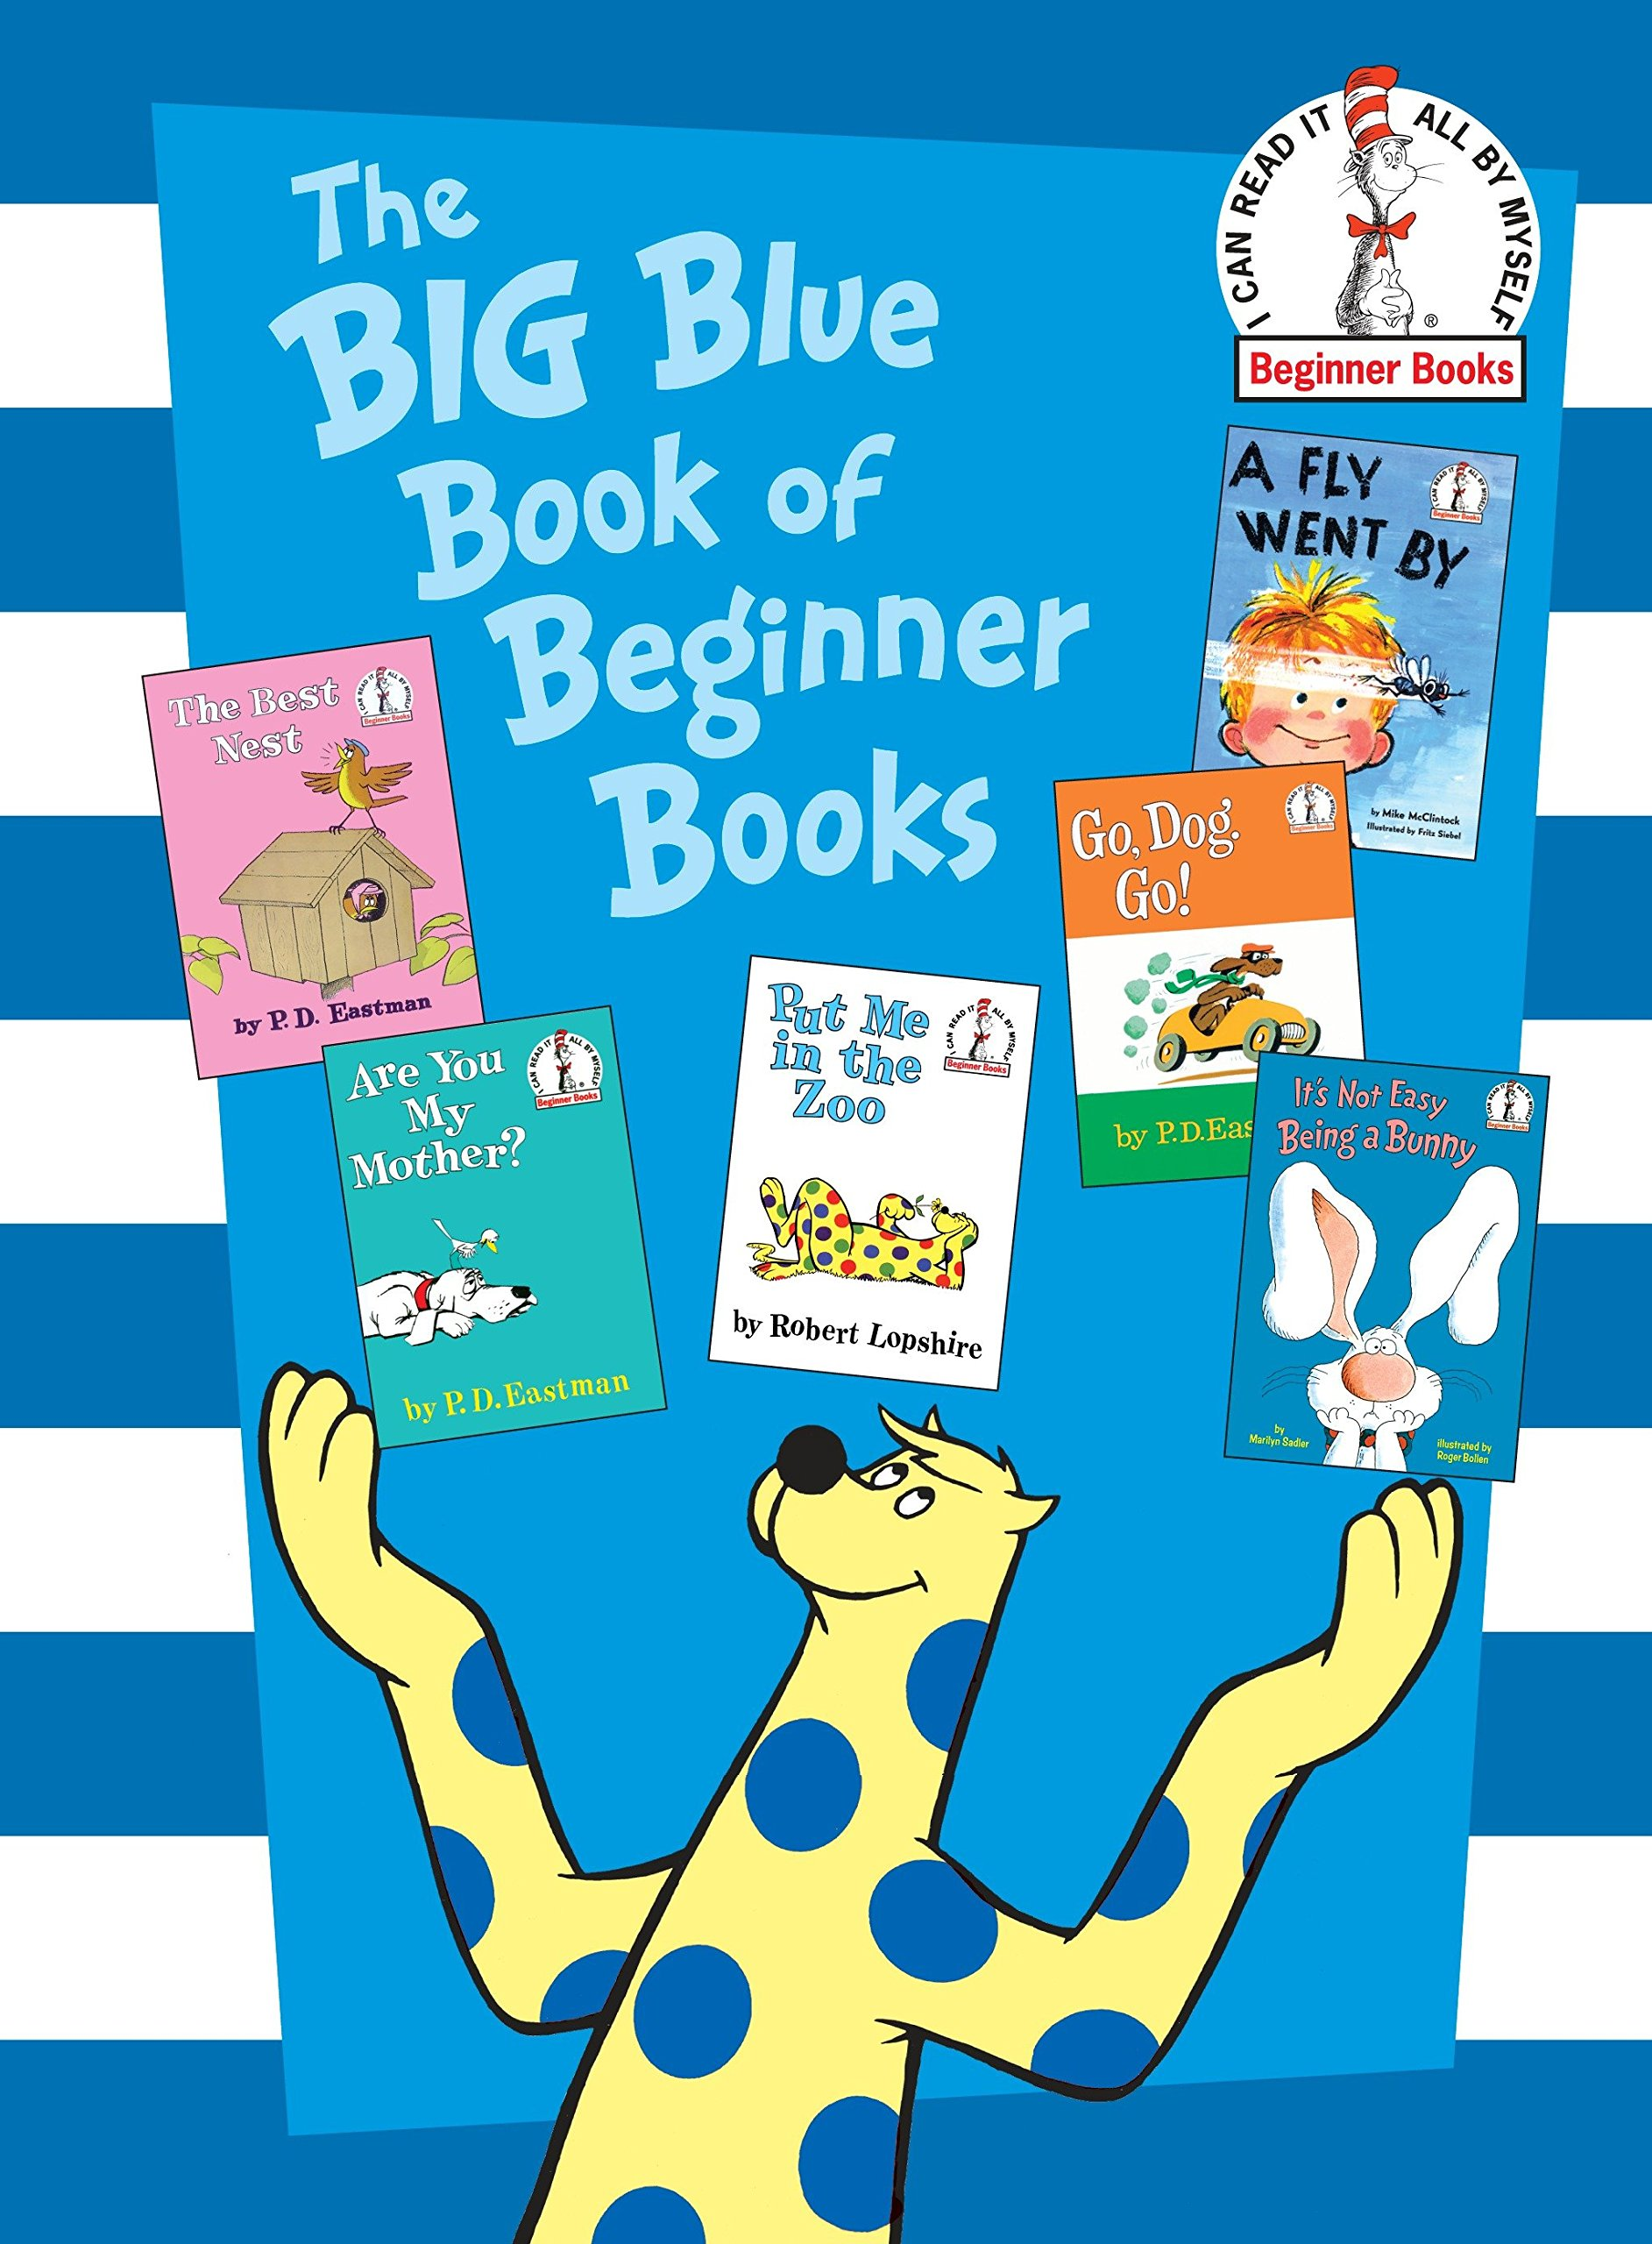 The Big Blue Book of Beginner Books (Beginner Books(R)) by Random House Books for Young Readers (Image #1)